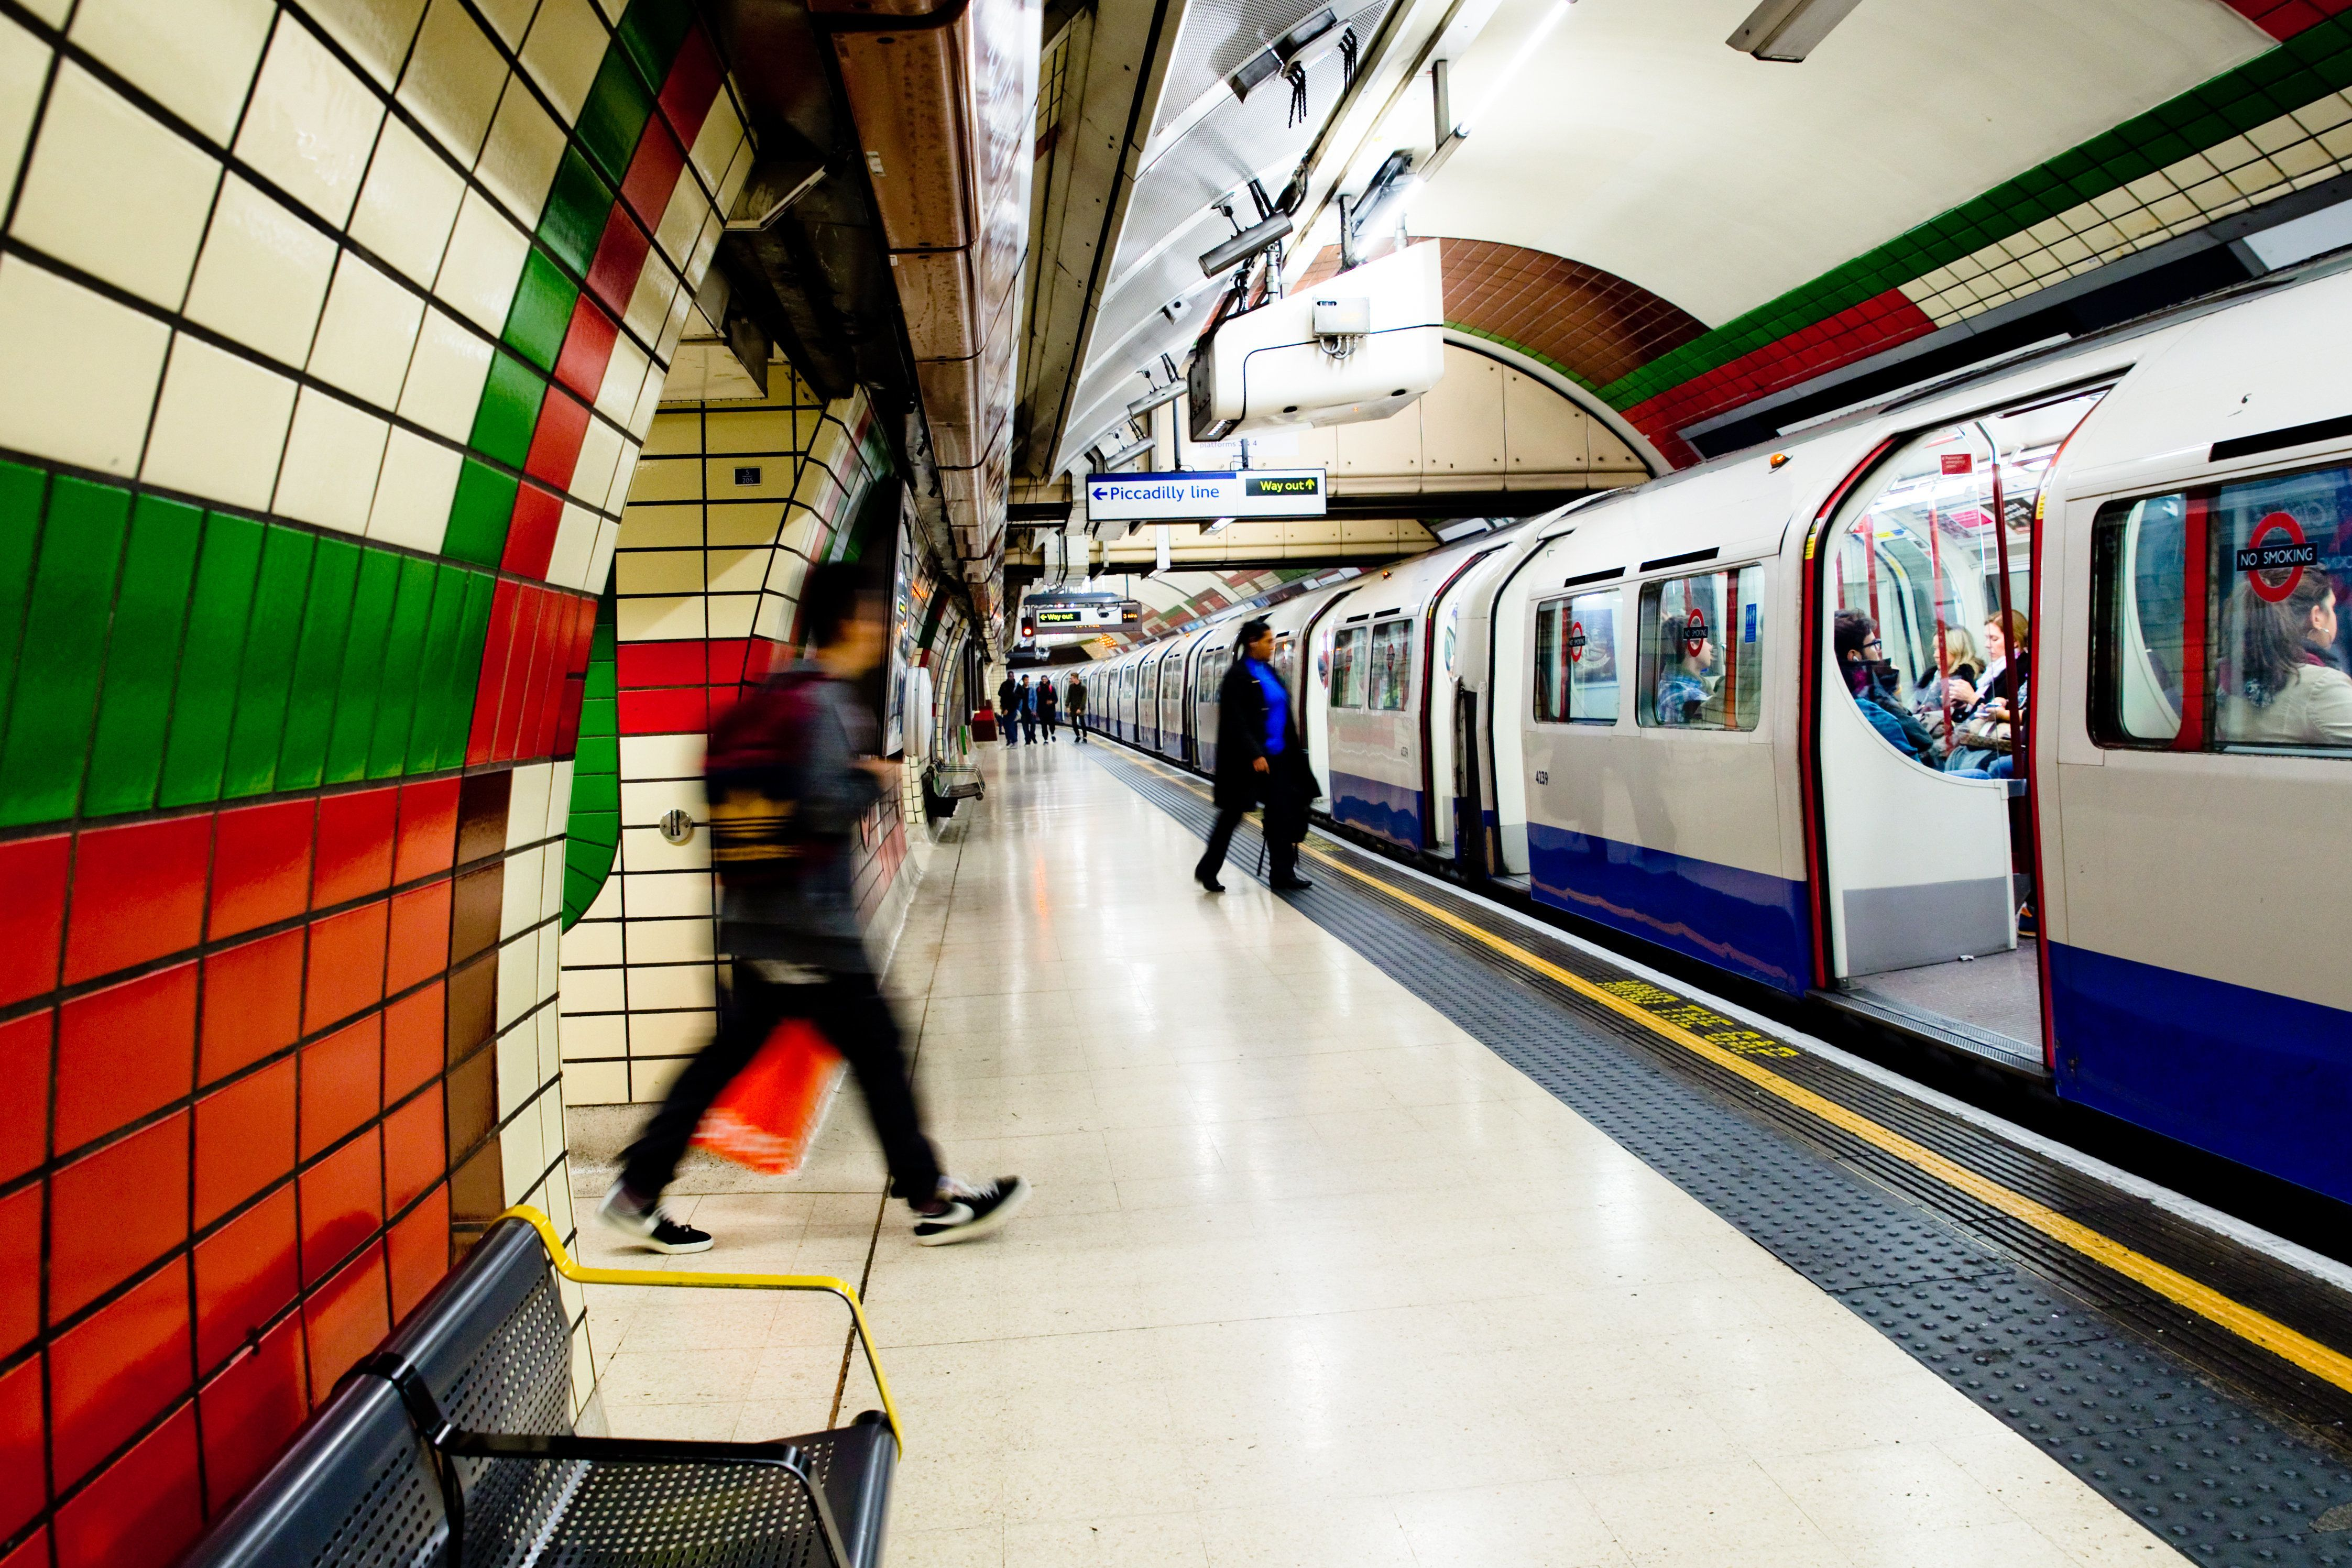 The London Underground is set to go gender-neutral